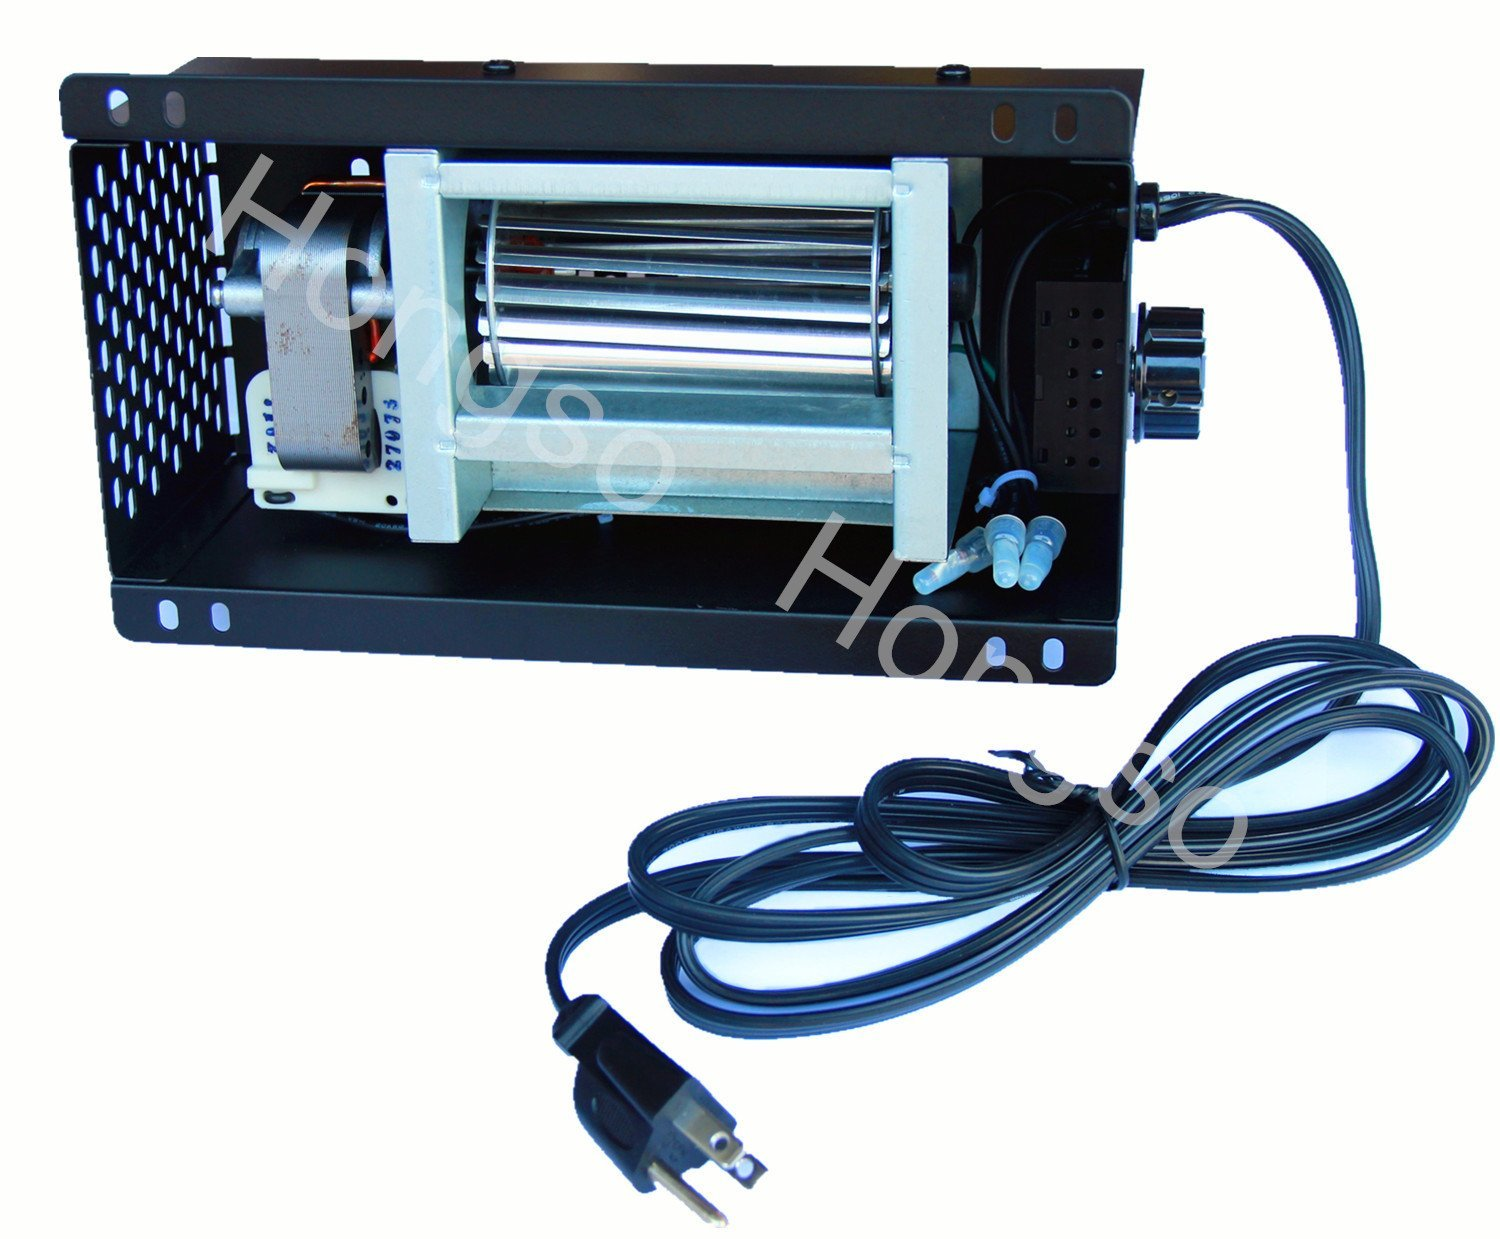 Buy Vicool Speed Variable S31105 Fireplace Blower 110V ~ 120V for GHP Group, Monessen / Majestic ...